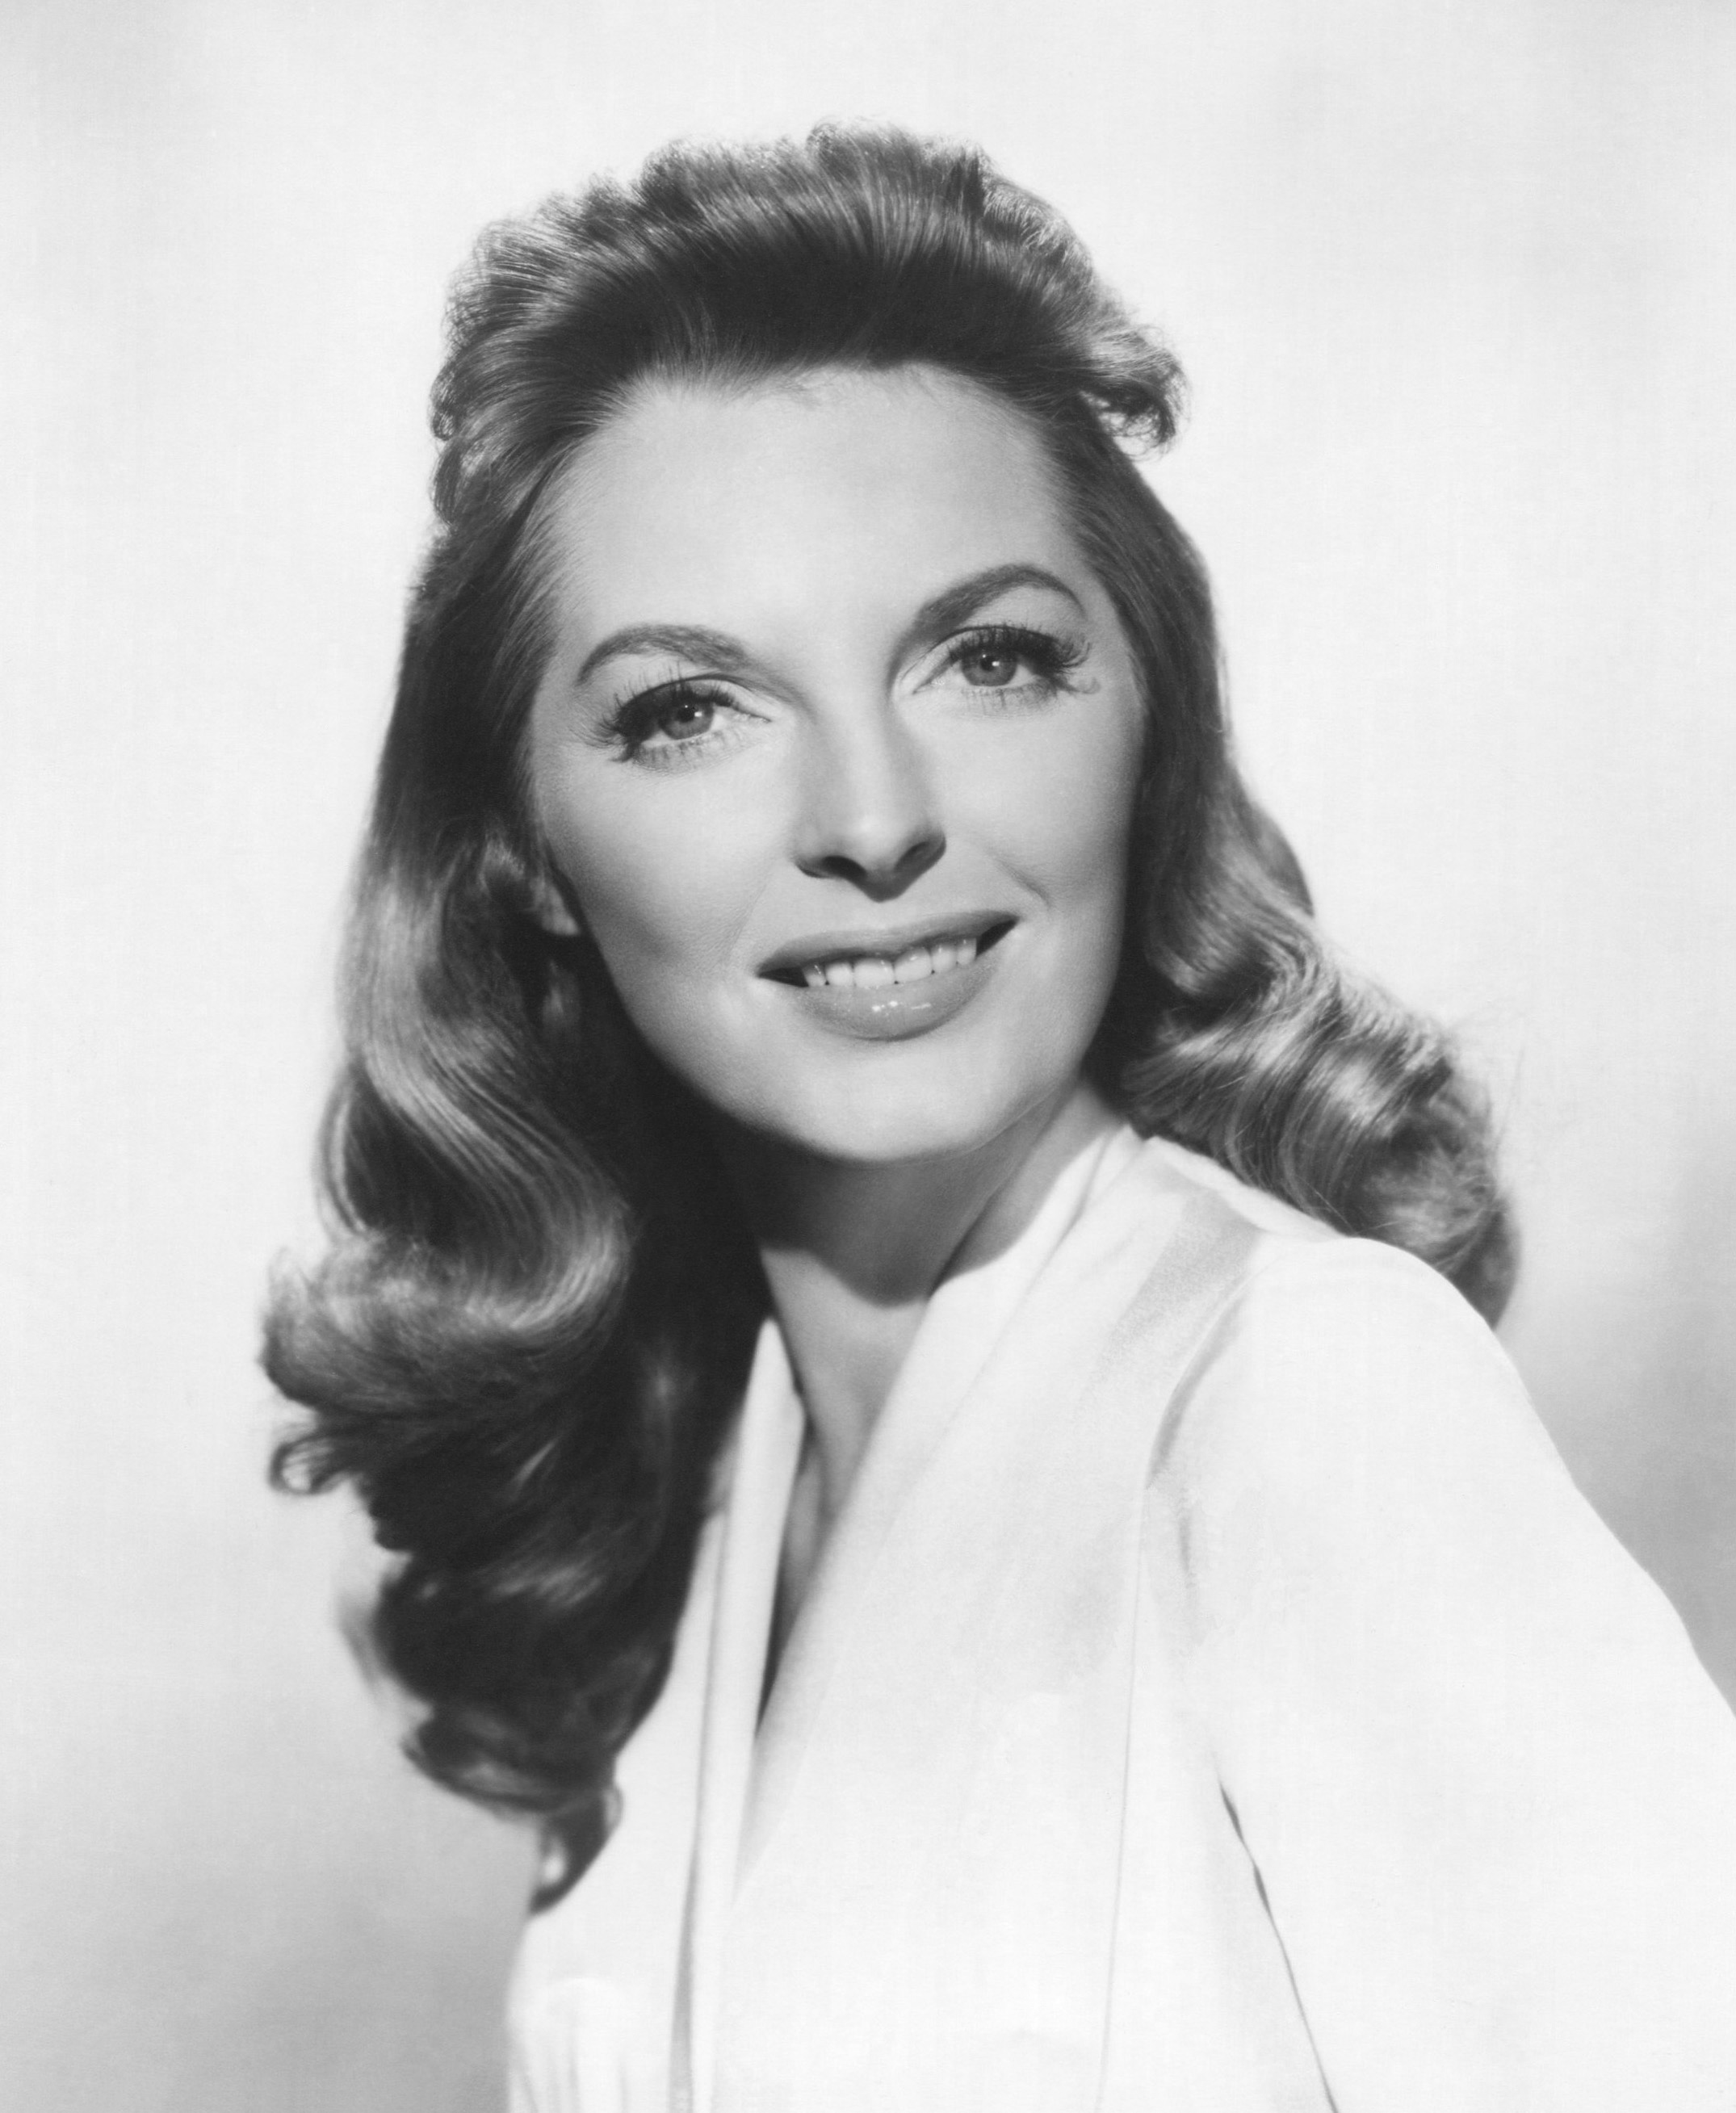 julie london black coffee lyricsjulie london fly me to the moon, julie london скачать, julie london i left my heart in san francisco lyrics, julie london when i fall in love, julie london light my fire, julie london слушать, julie london fever, julie london - black coffee, julie london christmas, julie london calendar girl, julie london black coffee lyrics, julie london скачать бесплатно, julie london summertime, julie london warm december, julie london pdf, julie london lp, julie london mp3, julie london go slow, julie london - june in january, julie london discogs